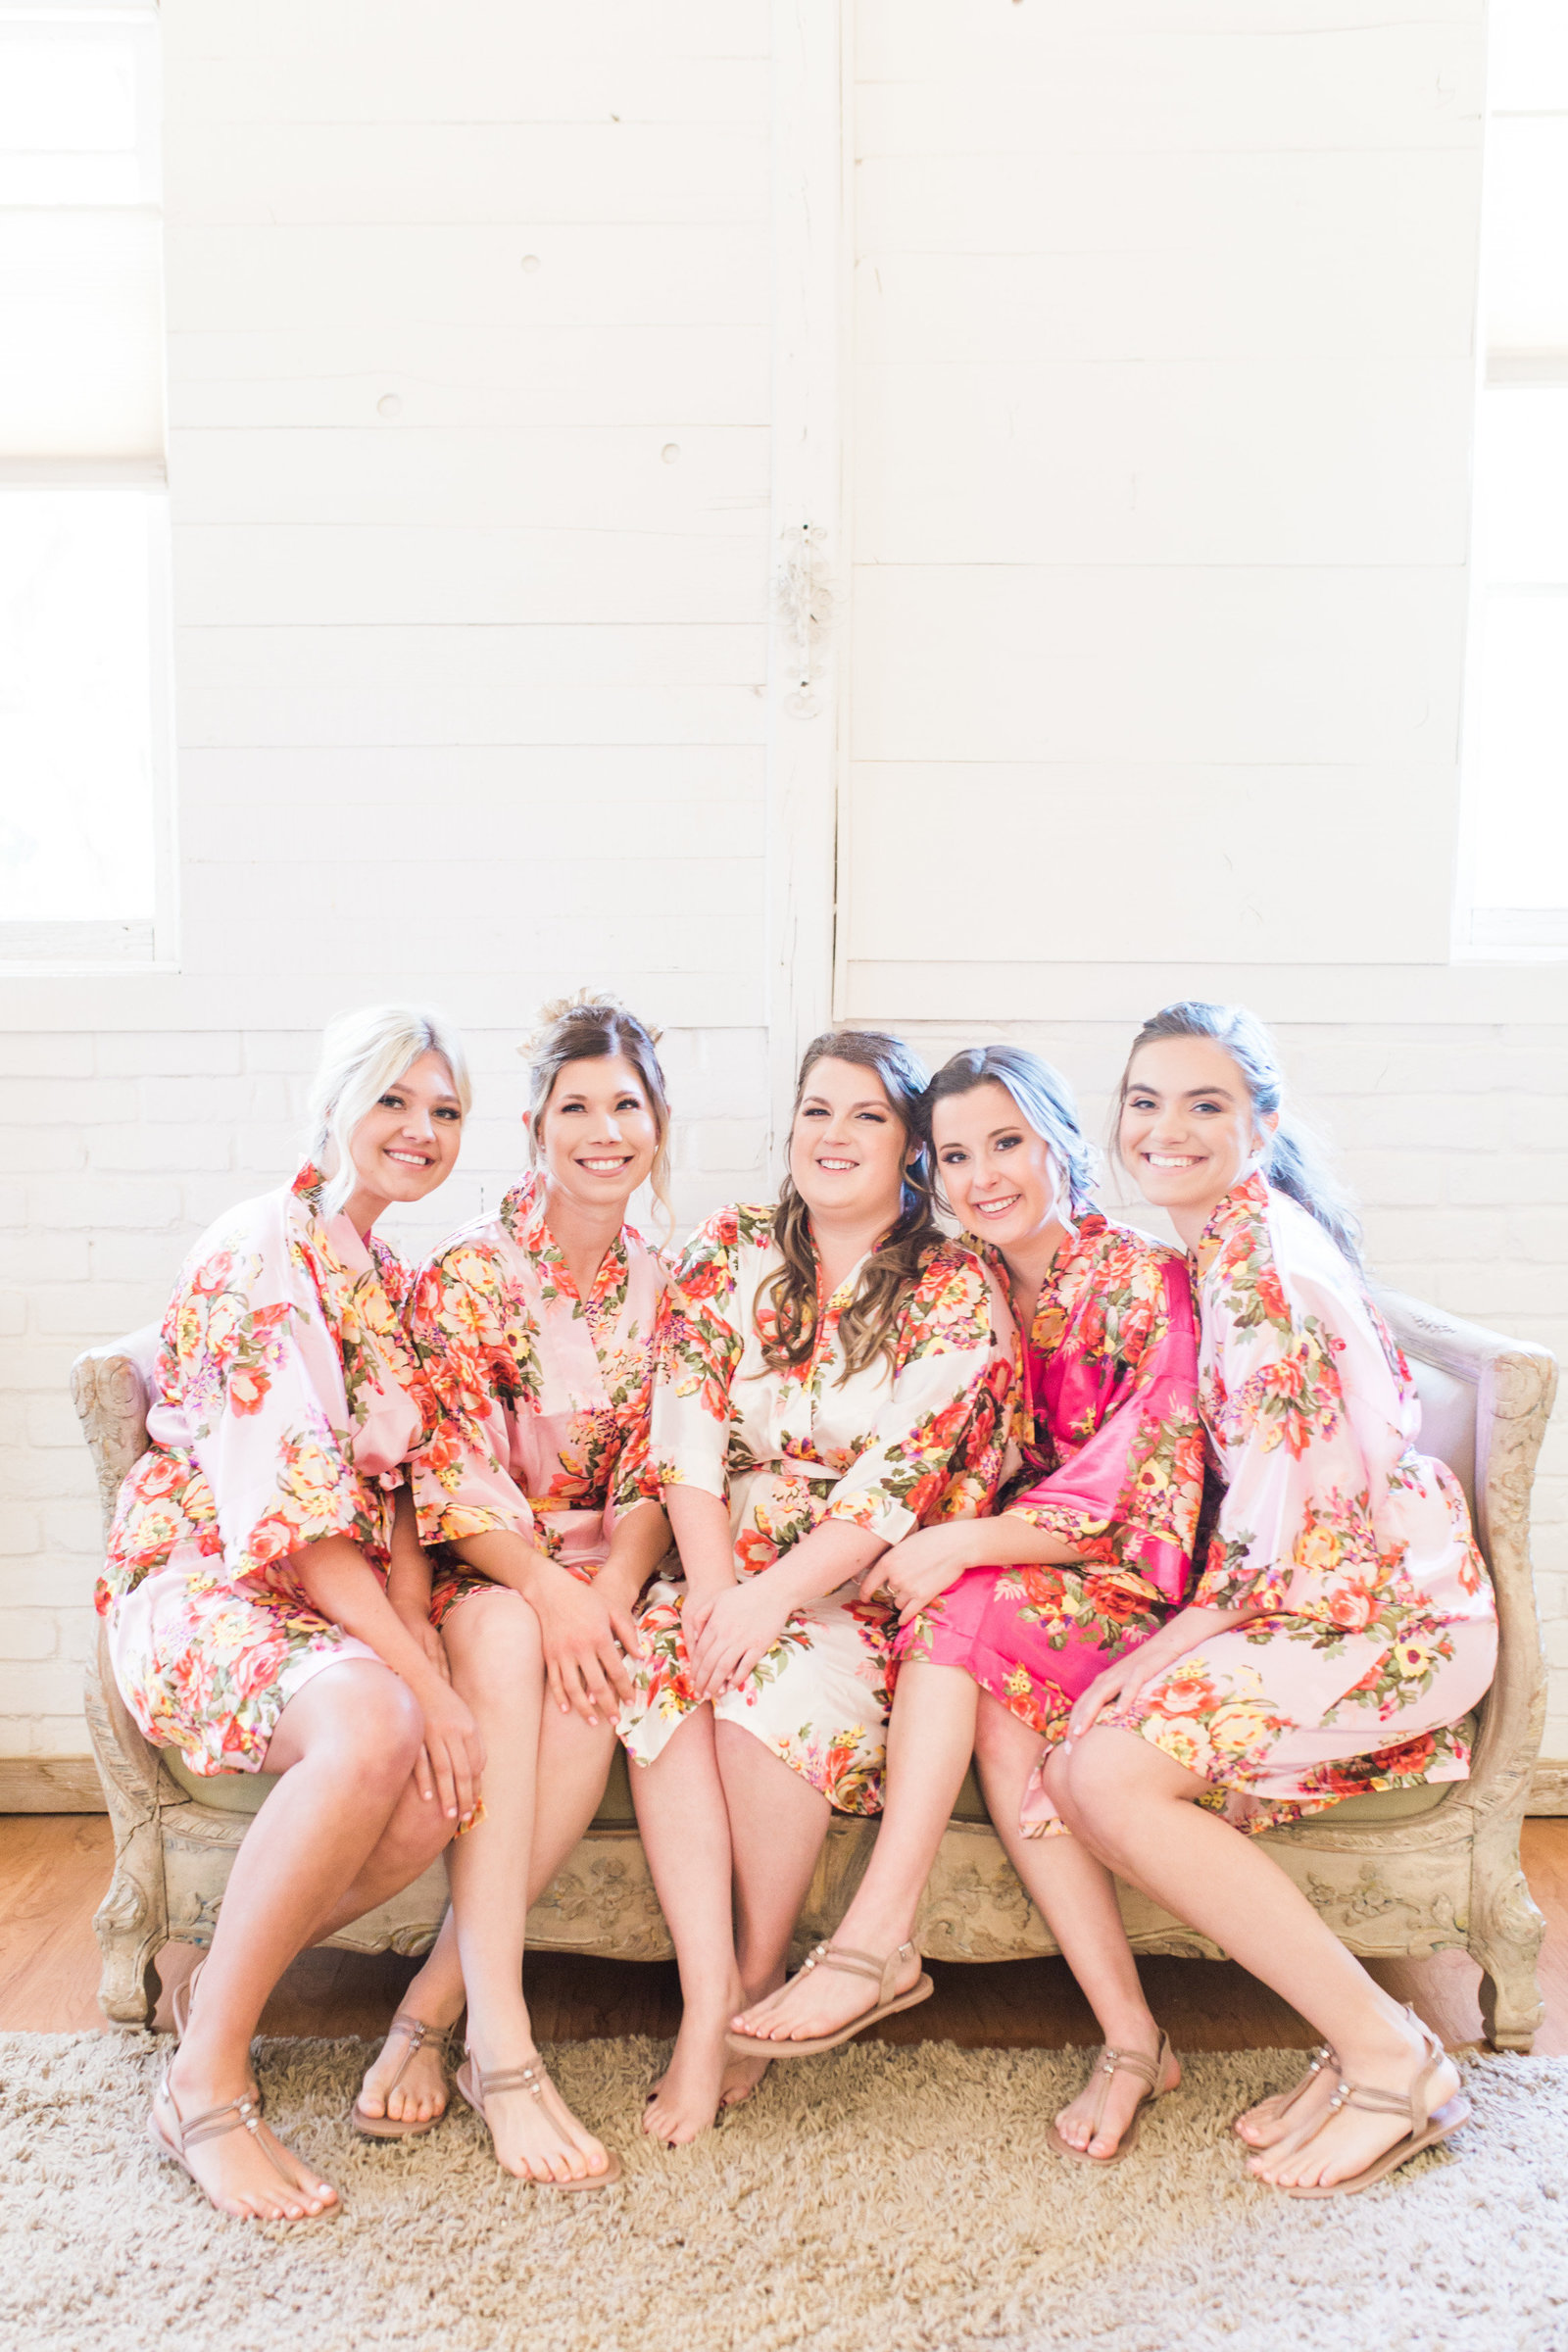 Windmill Winery Blush and Pink Wedding Photo of Bride and Bridesmaids in Floral Robes